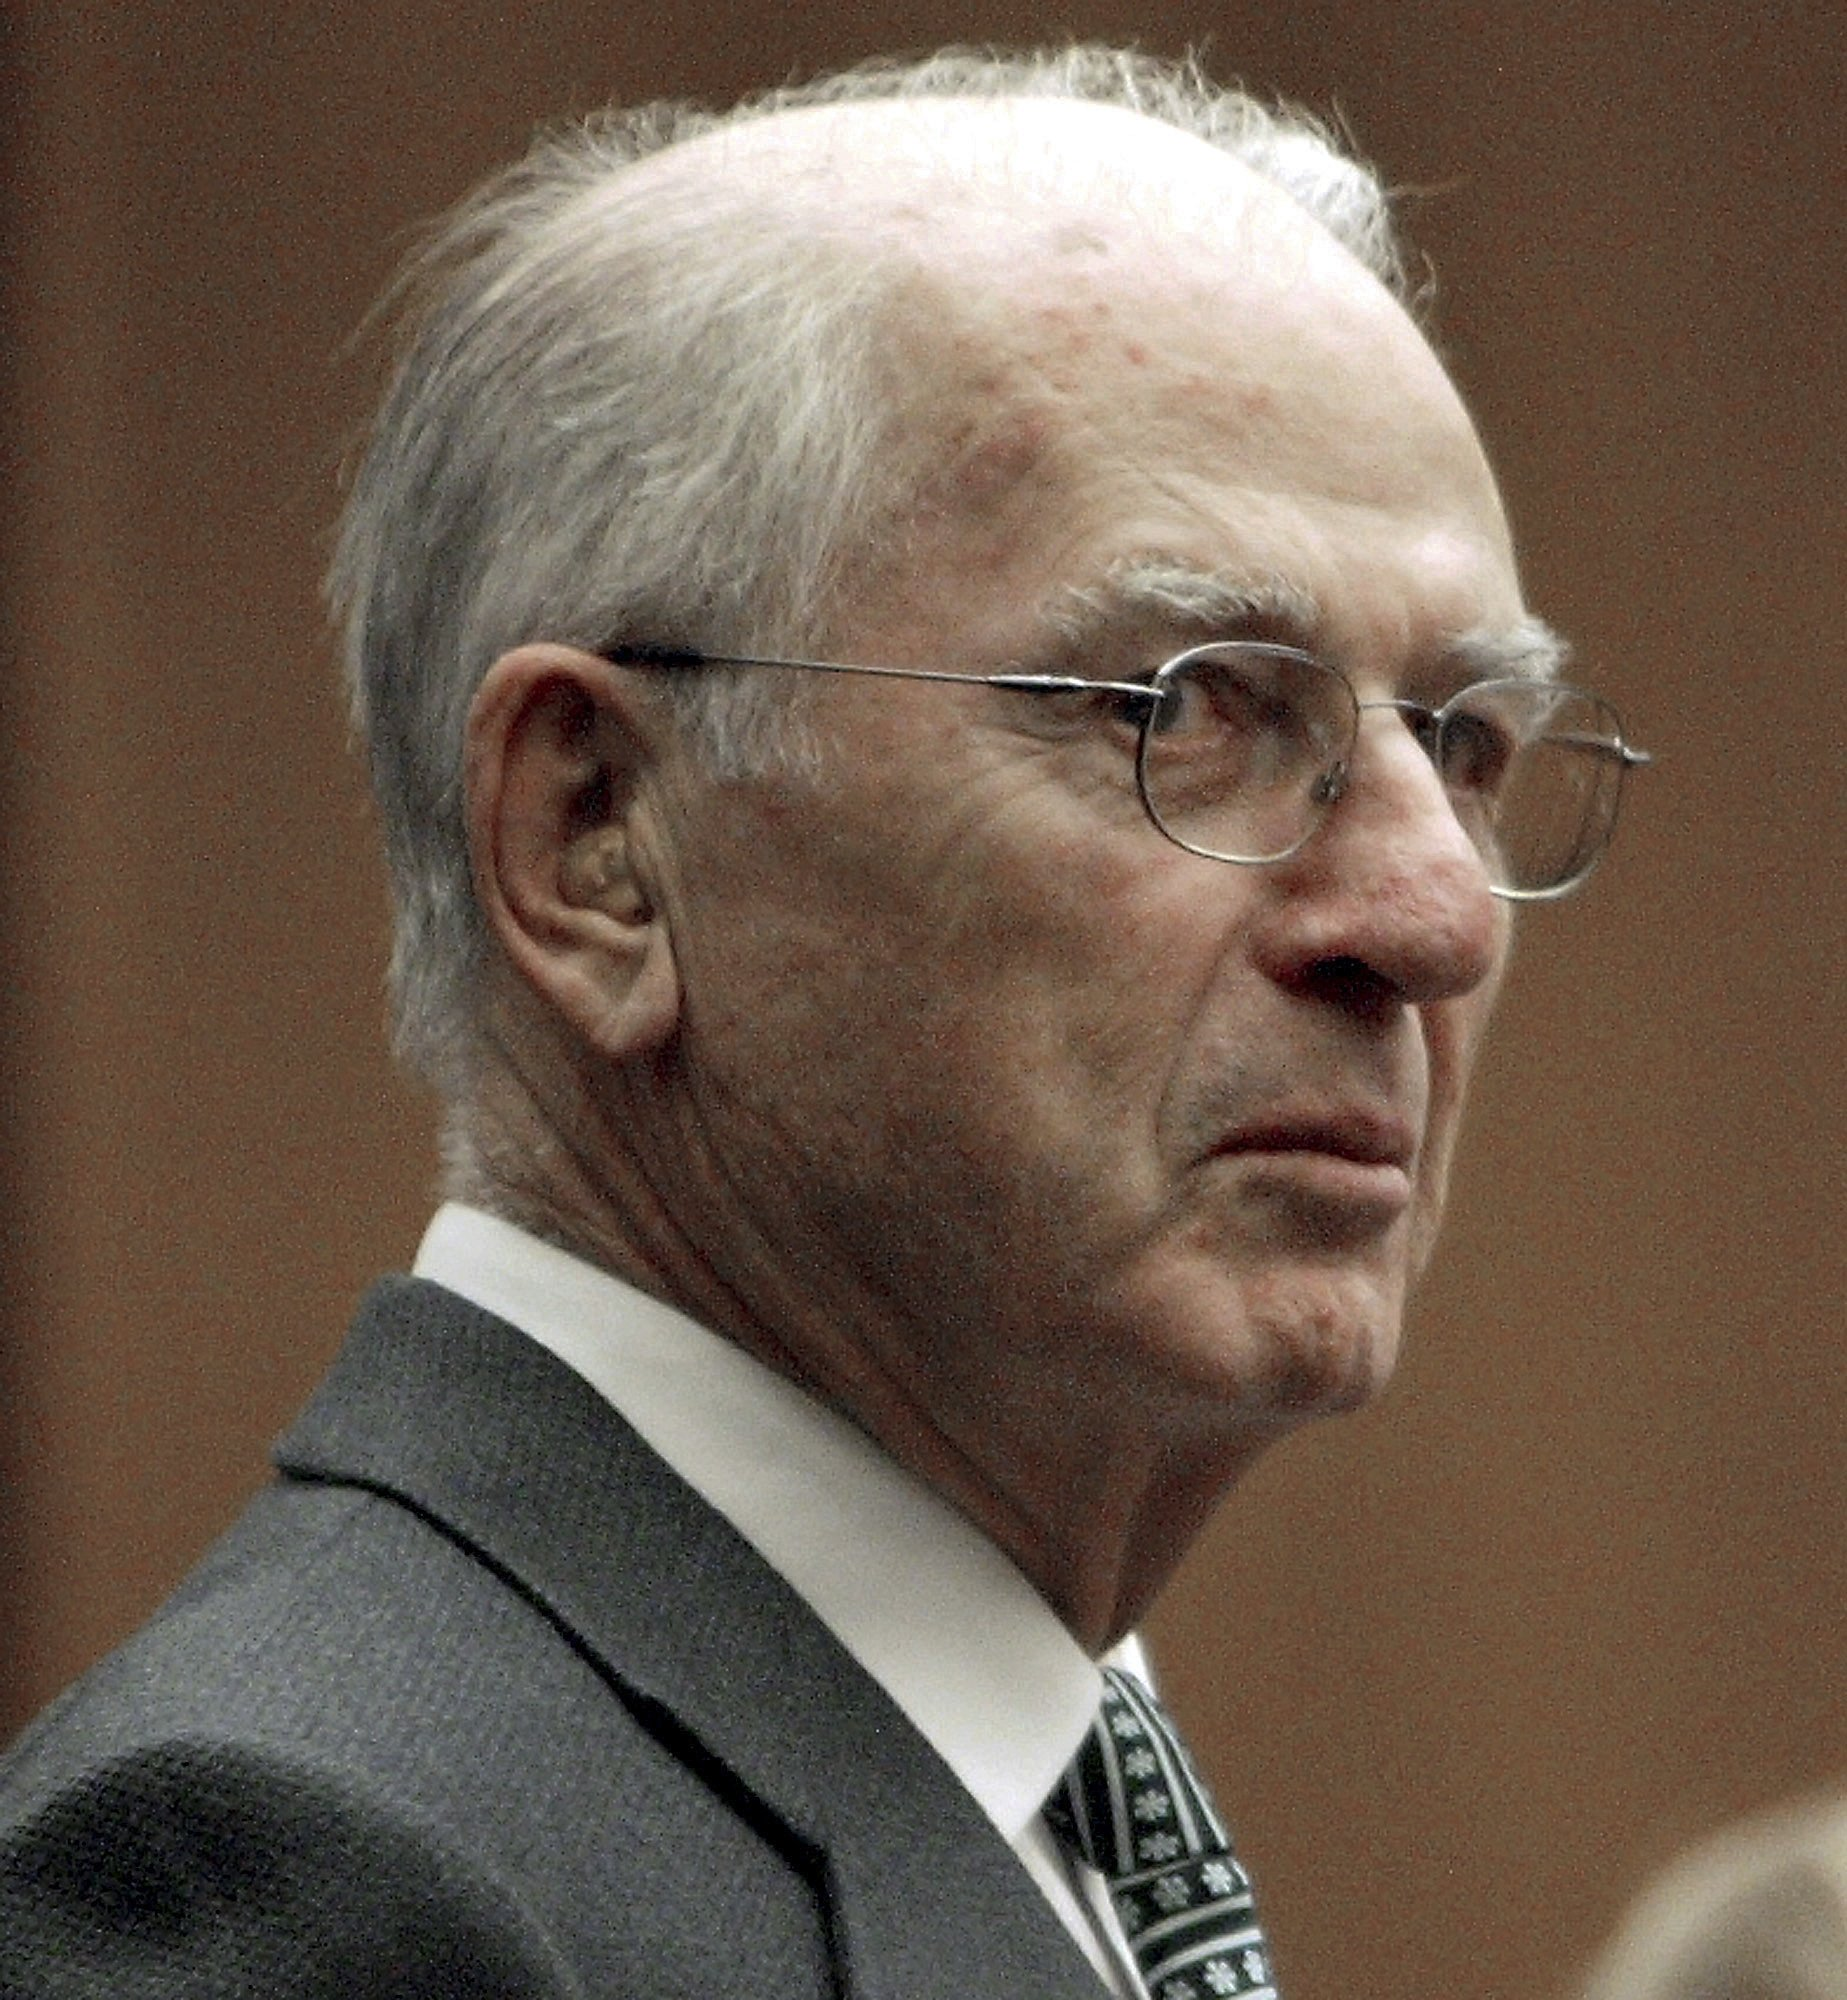 Ex-priest convicted of raping boy released from prison